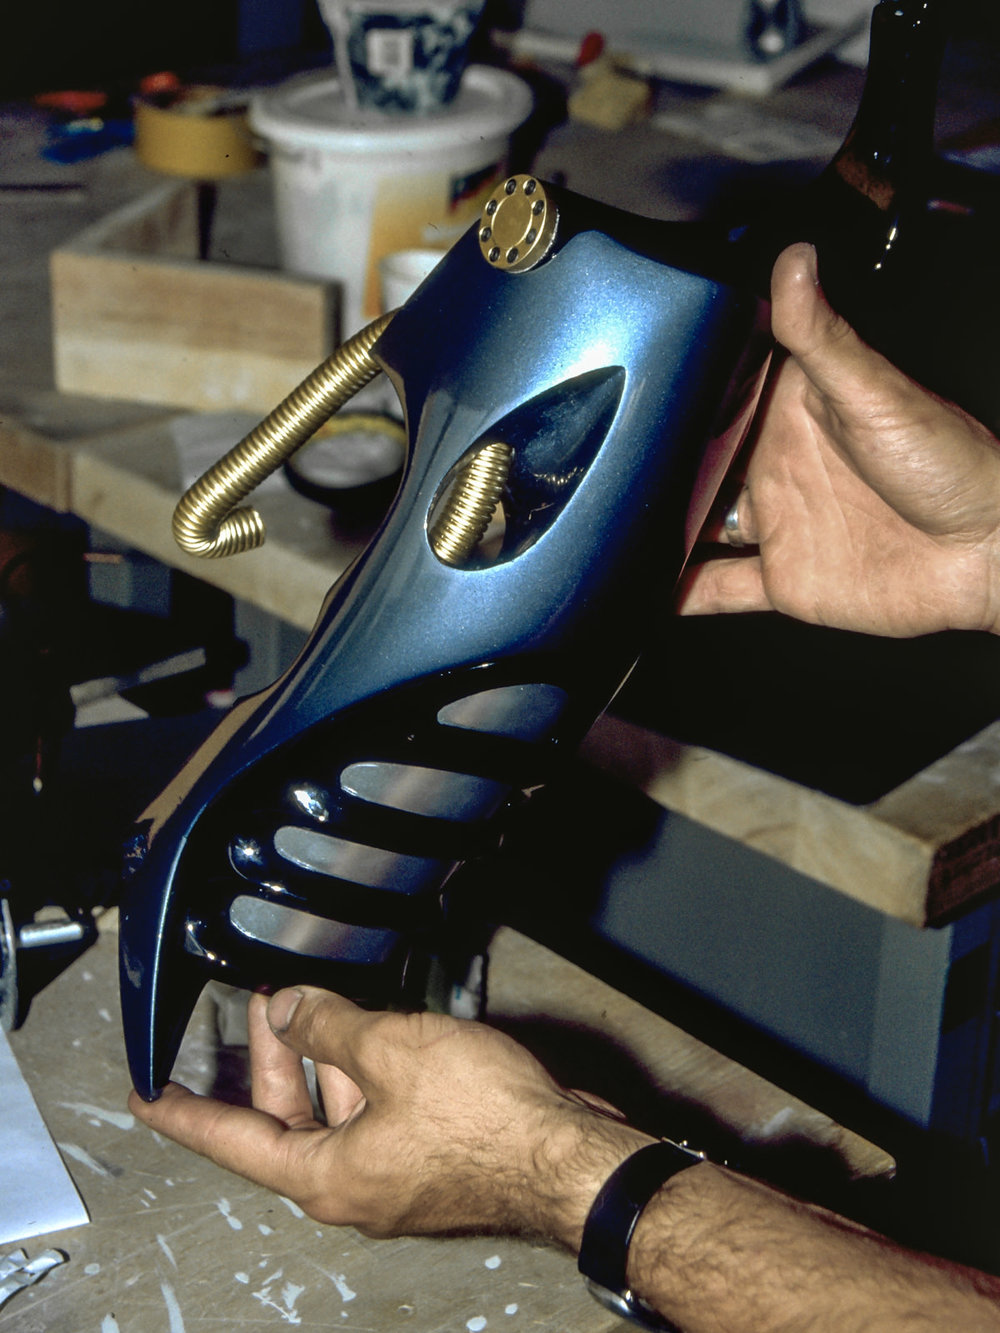 A finished part of the motorcycle in glossy blue metallic paint and gold detailing